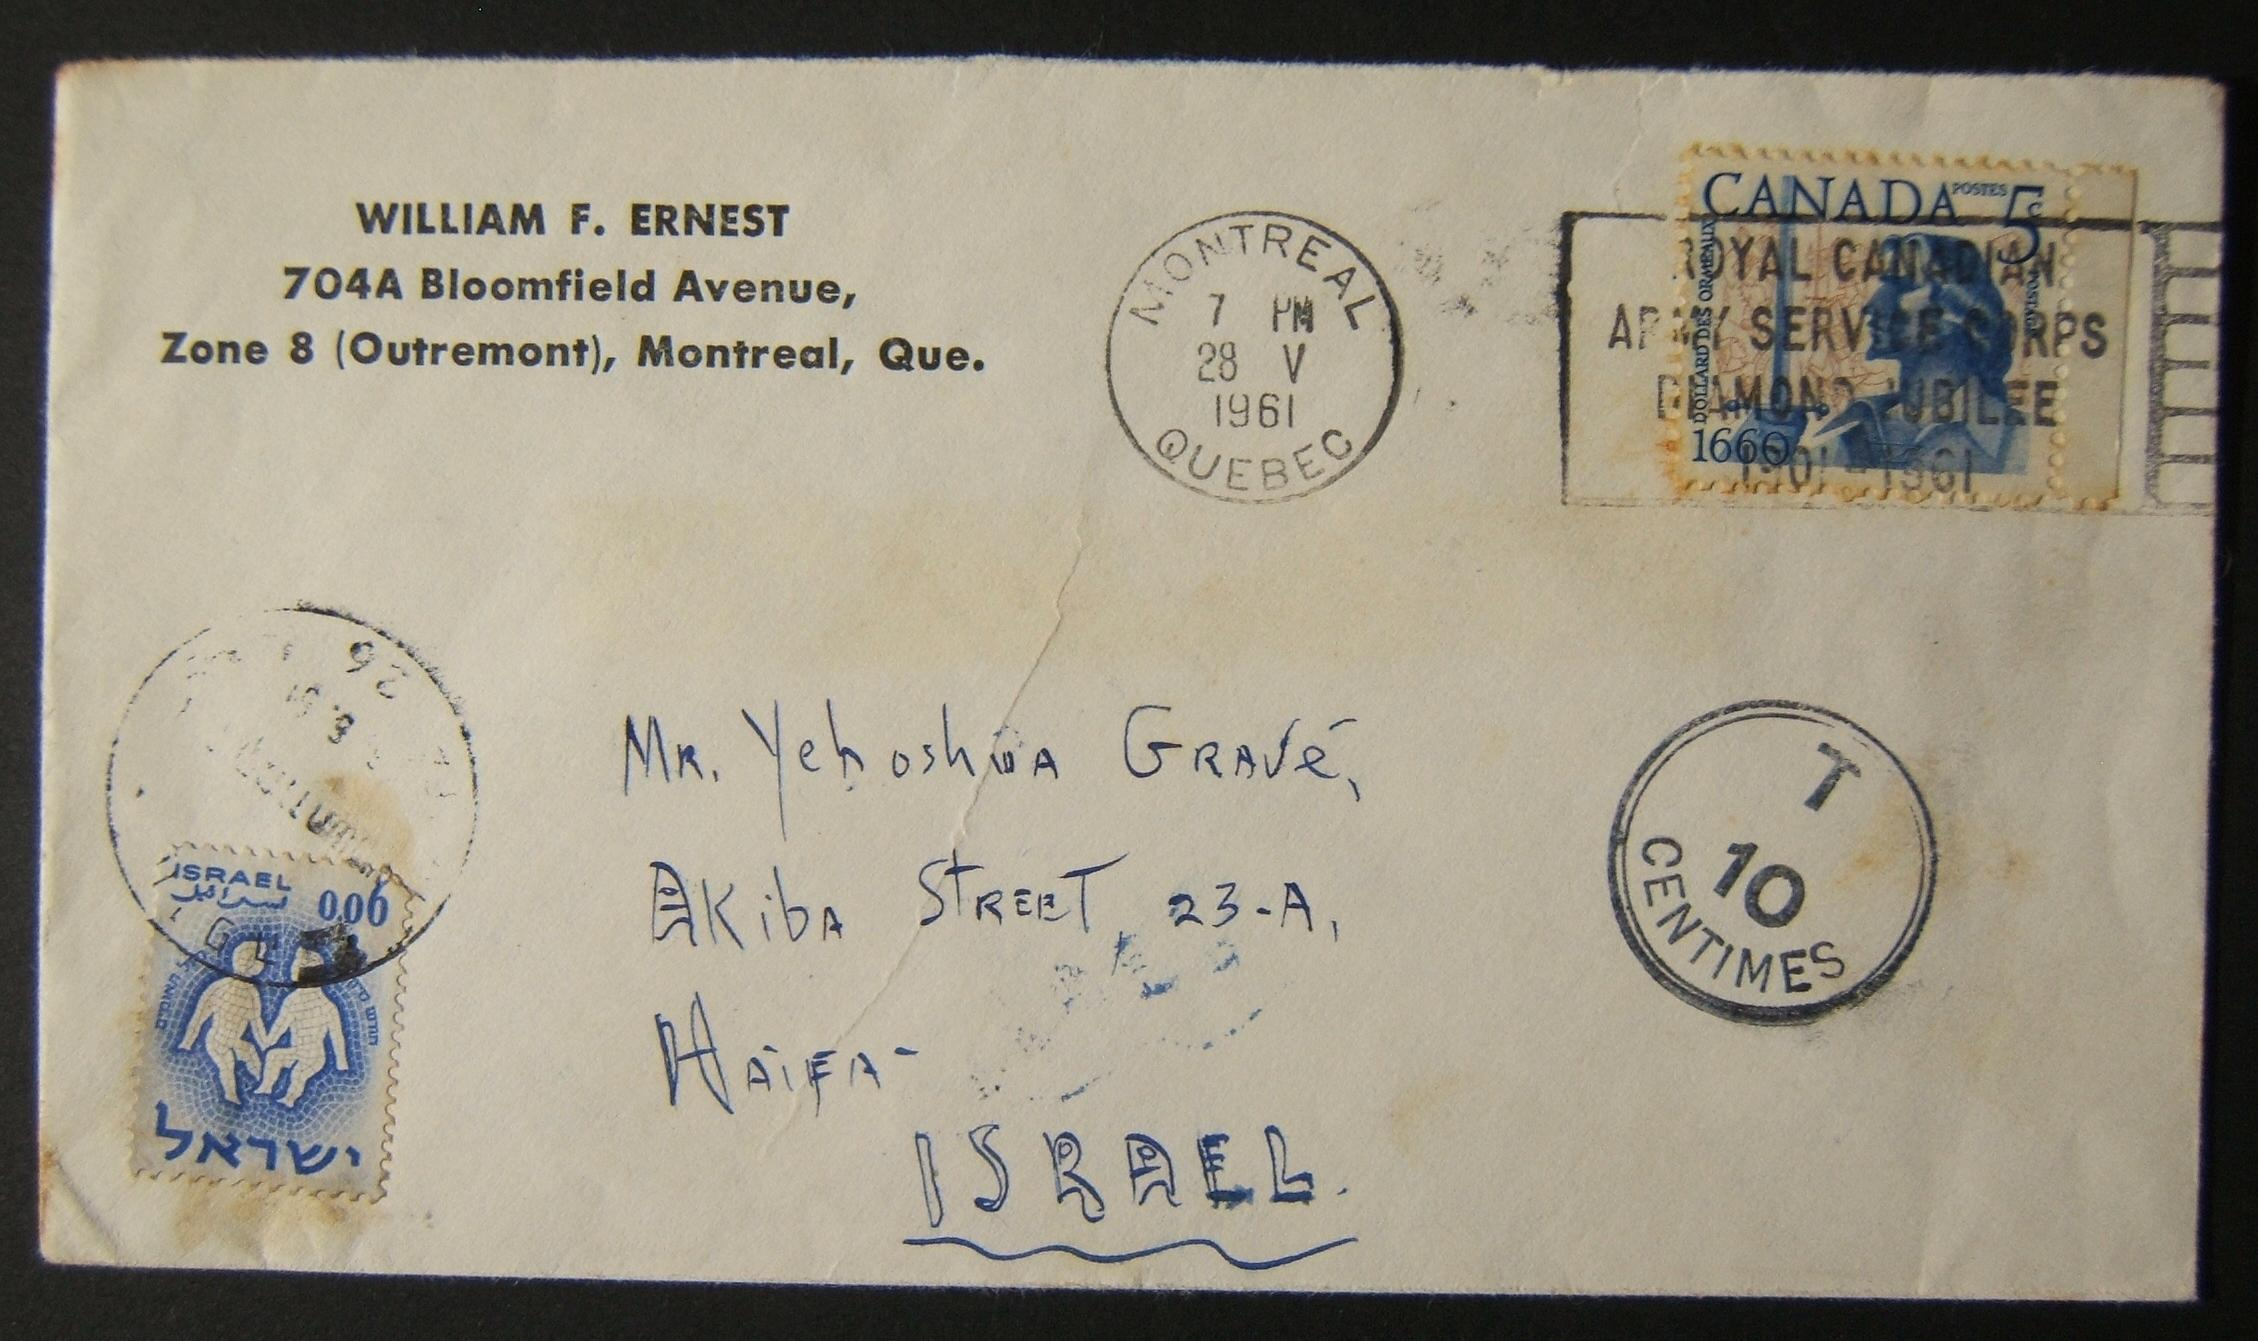 1961 incoming Canadian taxed mail: 28 V 1961 surface mailed cover ex MONTREAL to HAIFA underfranked at $0.05 and taxed 0.06L in Israel (oddly, without local markings), paid 26(?)-6